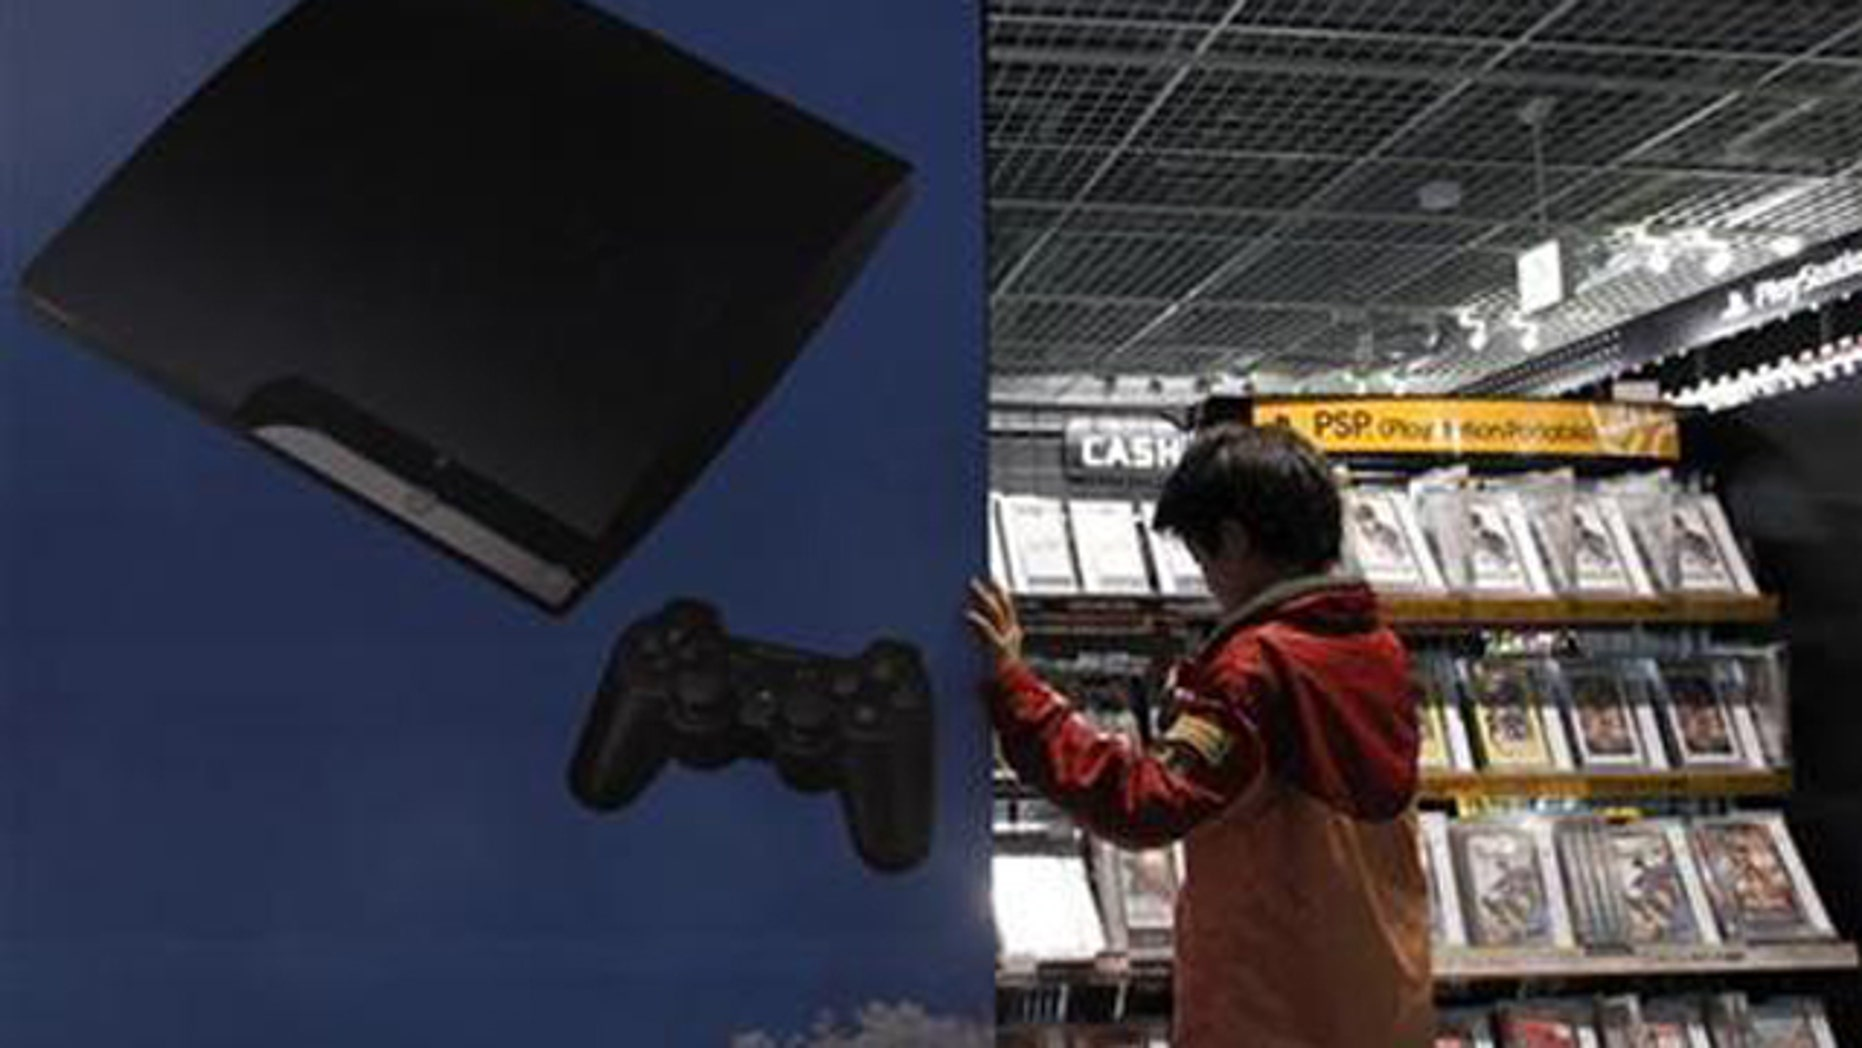 A boy chooses Sony's Playstation game software at an electronic shop in Tokyo May 5, 2011.